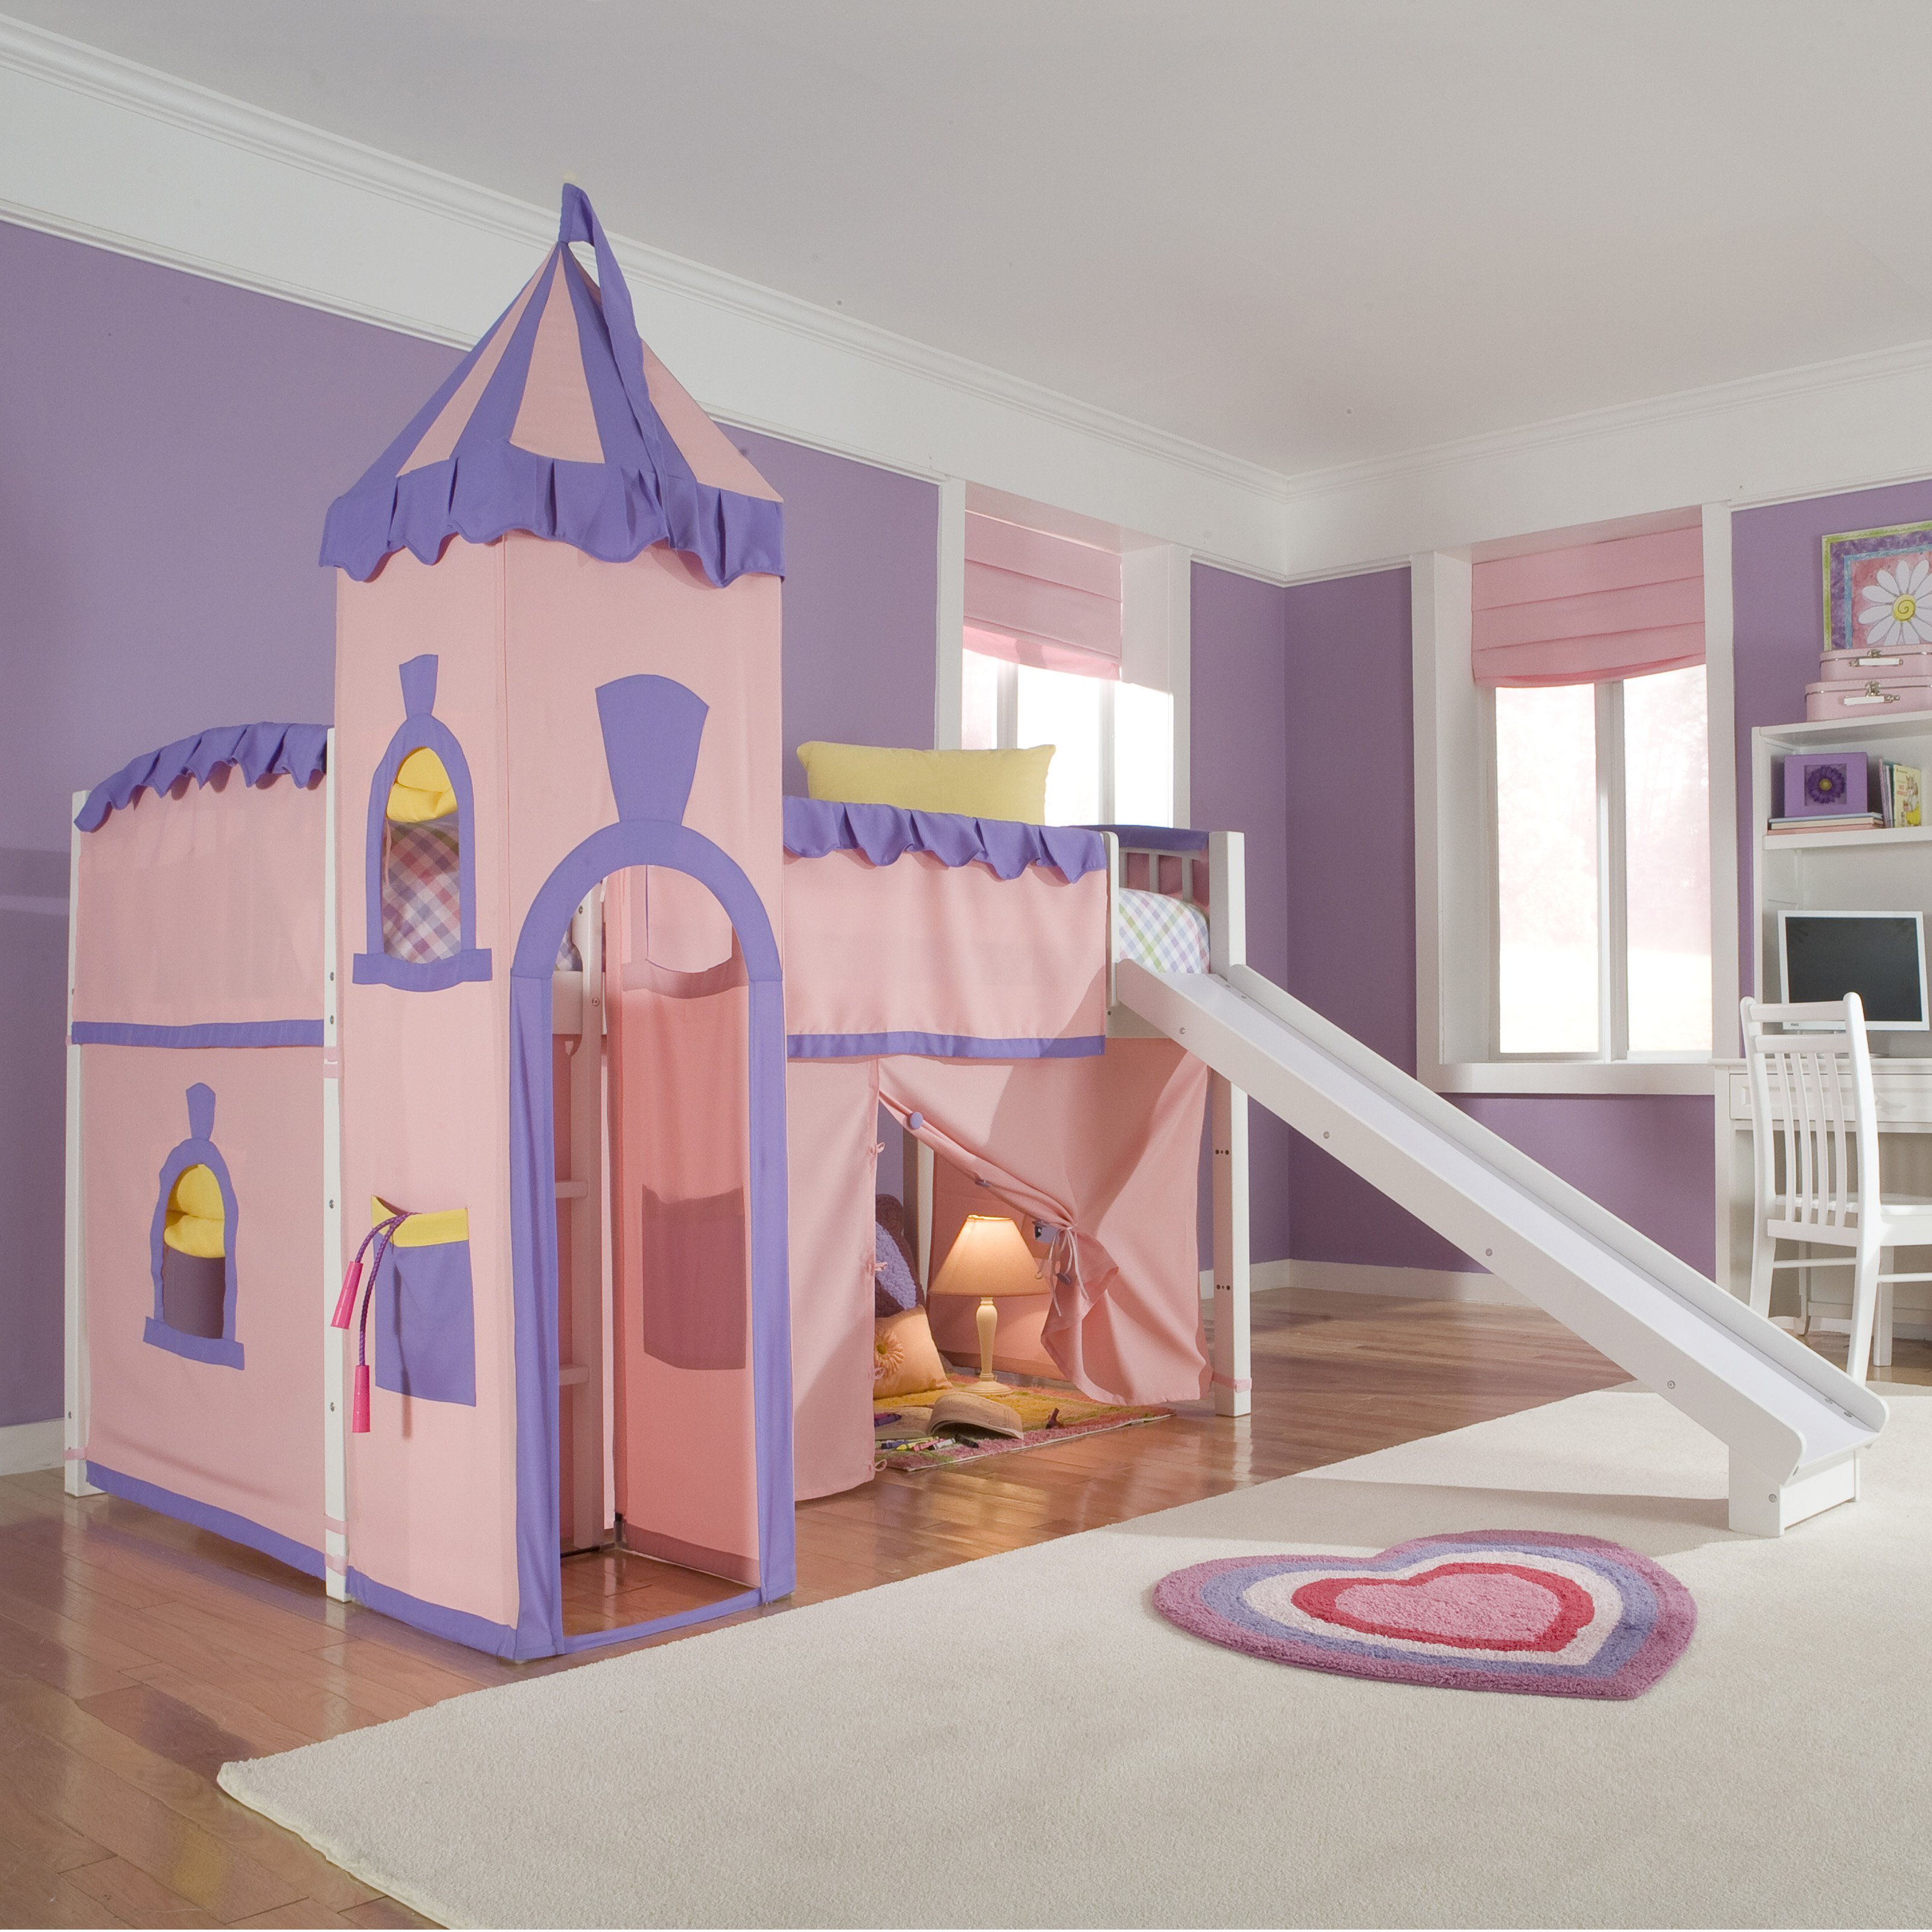 Featured Image of Kid Rooms: The Playground Of Kids